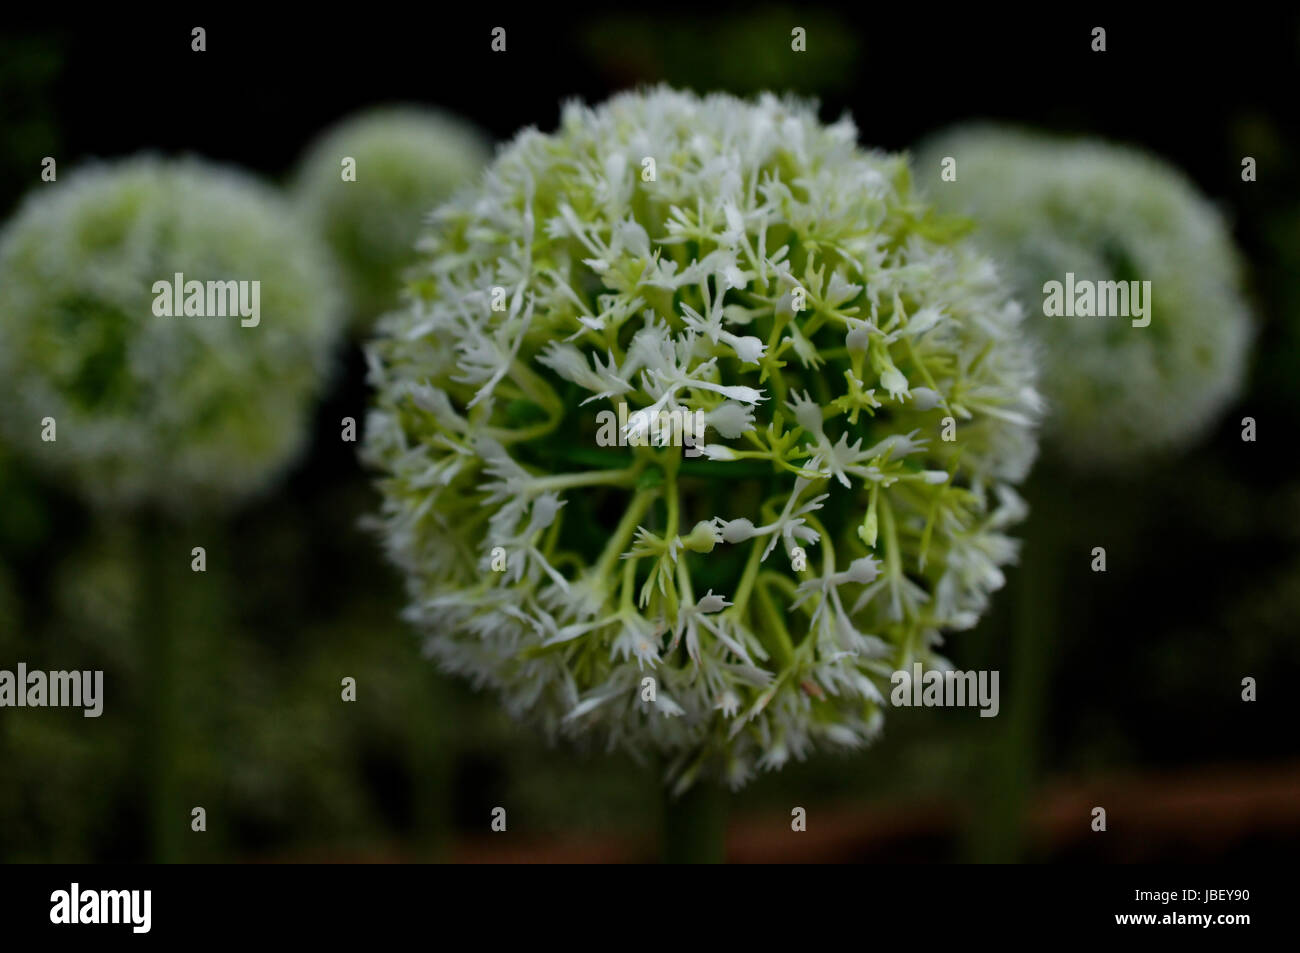 Green And White Flower Ball Close Up Stock Photo 144772908 Alamy